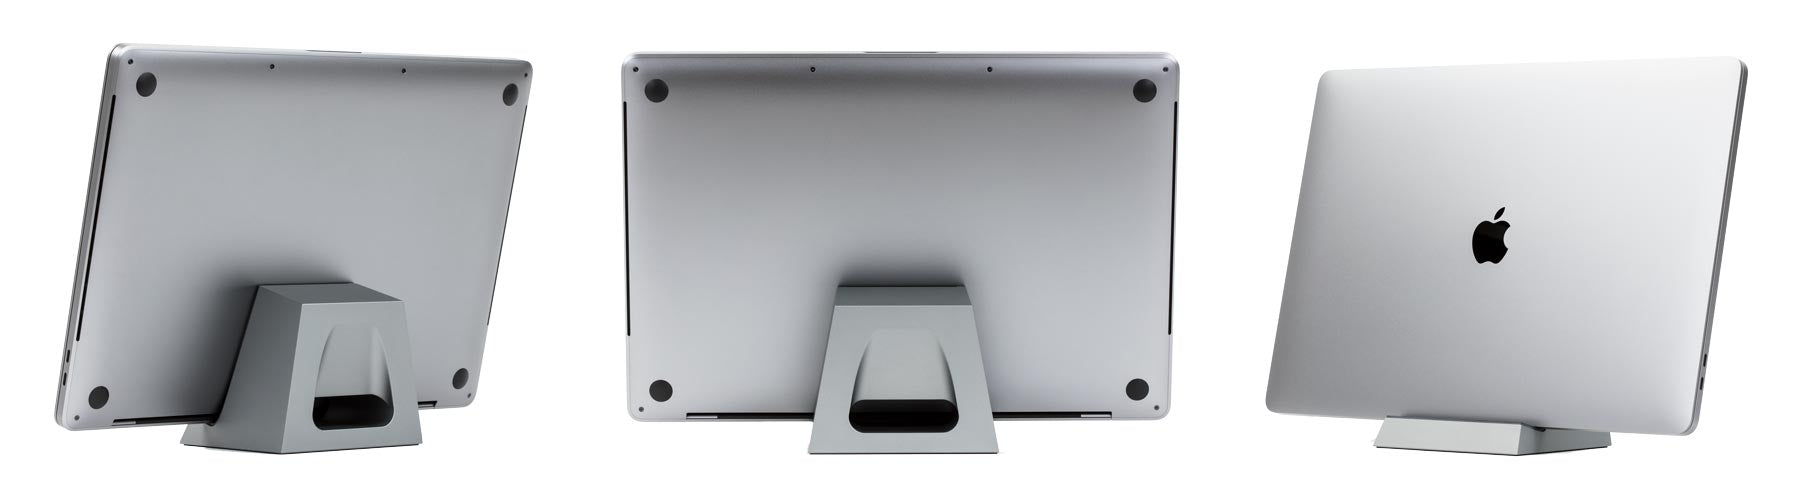 SVALT Cooling Stand model Dock model D with 16-inch MacBook Pro